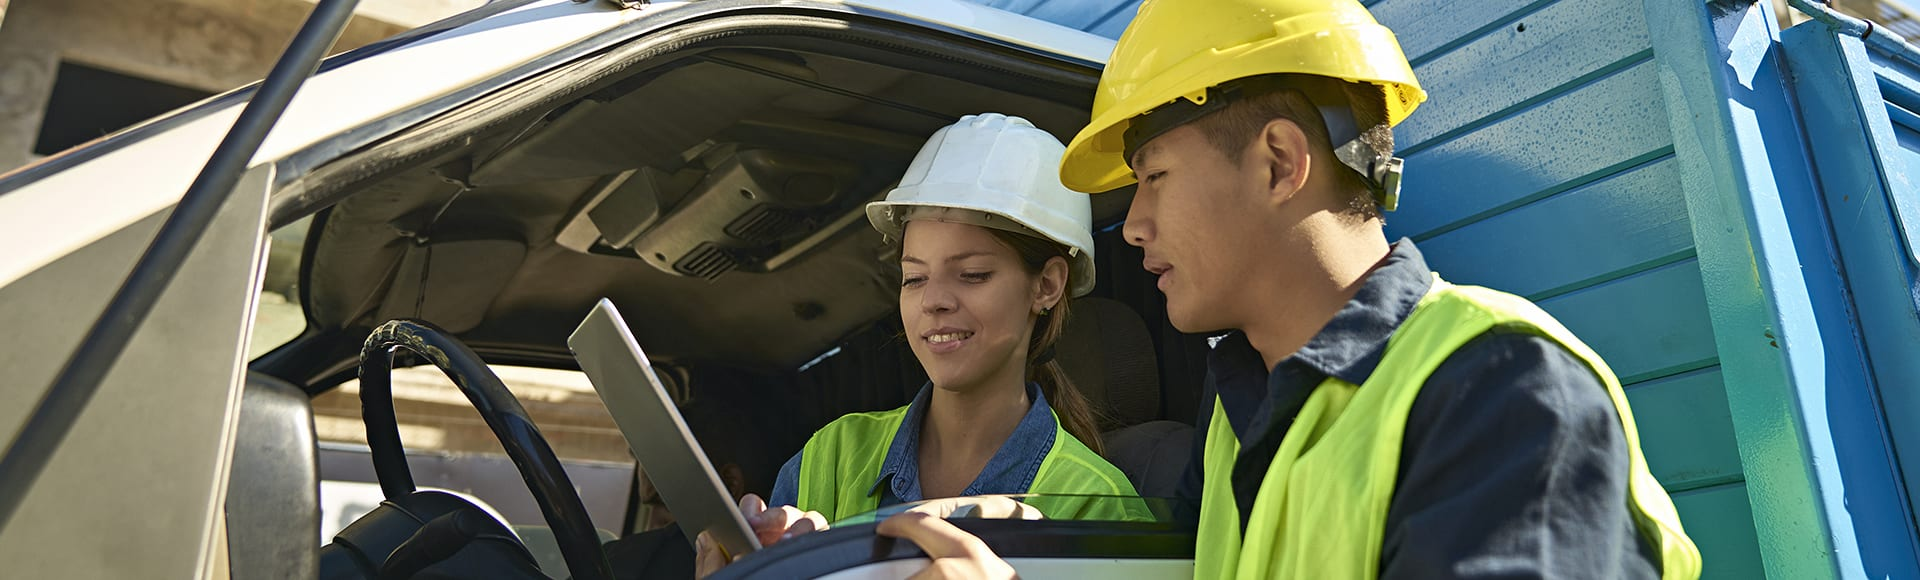 Low angle view of construction workers discussing over digital tablet. Coworkers are examining checklist at construction site. They are wearing protective workwear.